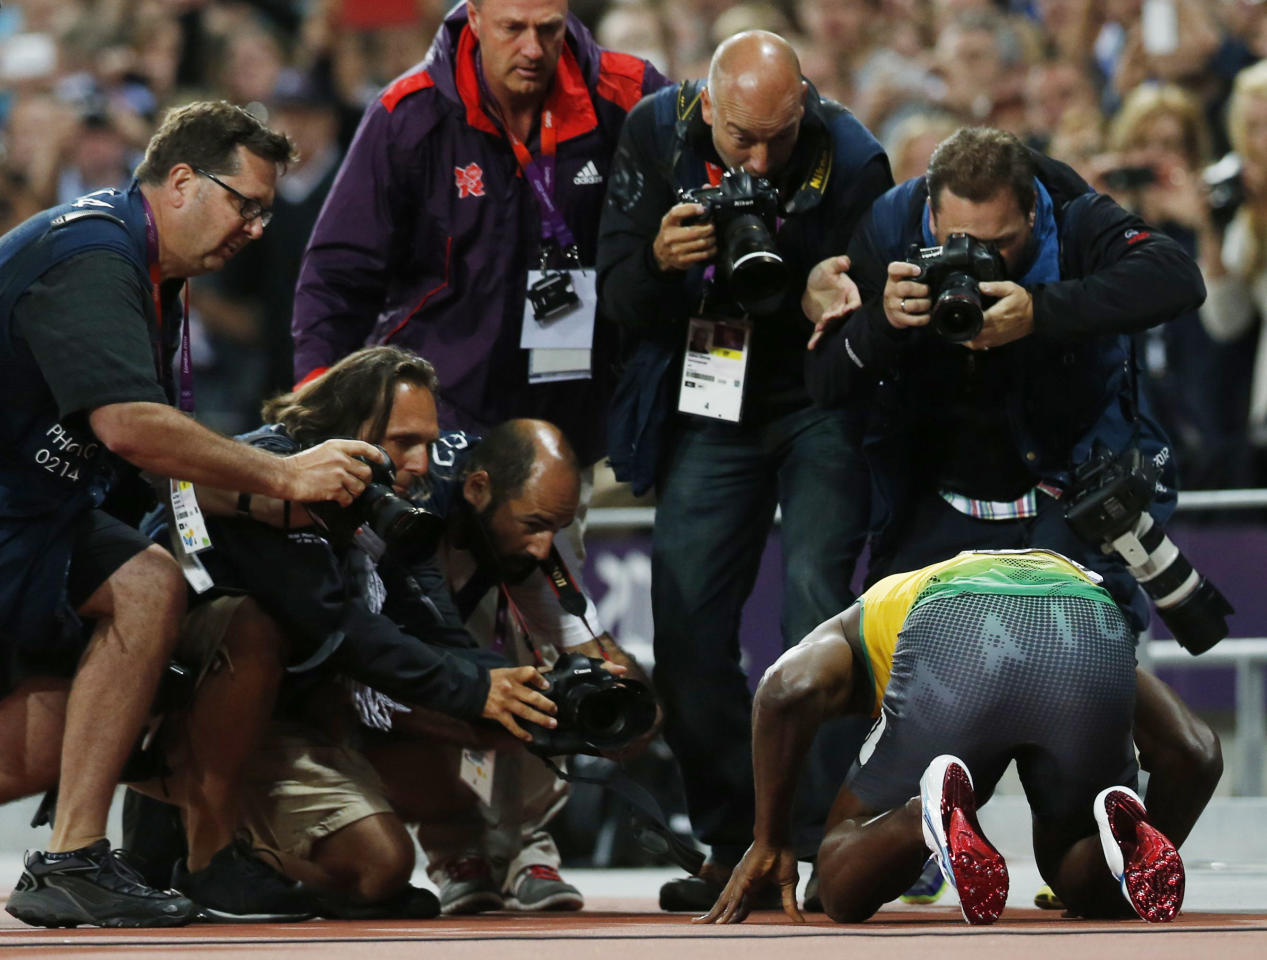 News photographers crowd around Jamaica's Usain Bolt as he celebrates victory after the men's 100m final during the London 2012 Olympic Games at the Olympic Stadium August 5, 2012.  REUTERS/Mark Blinch (BRITAIN  - Tags: OLYMPICS SPORT ATHLETICS)